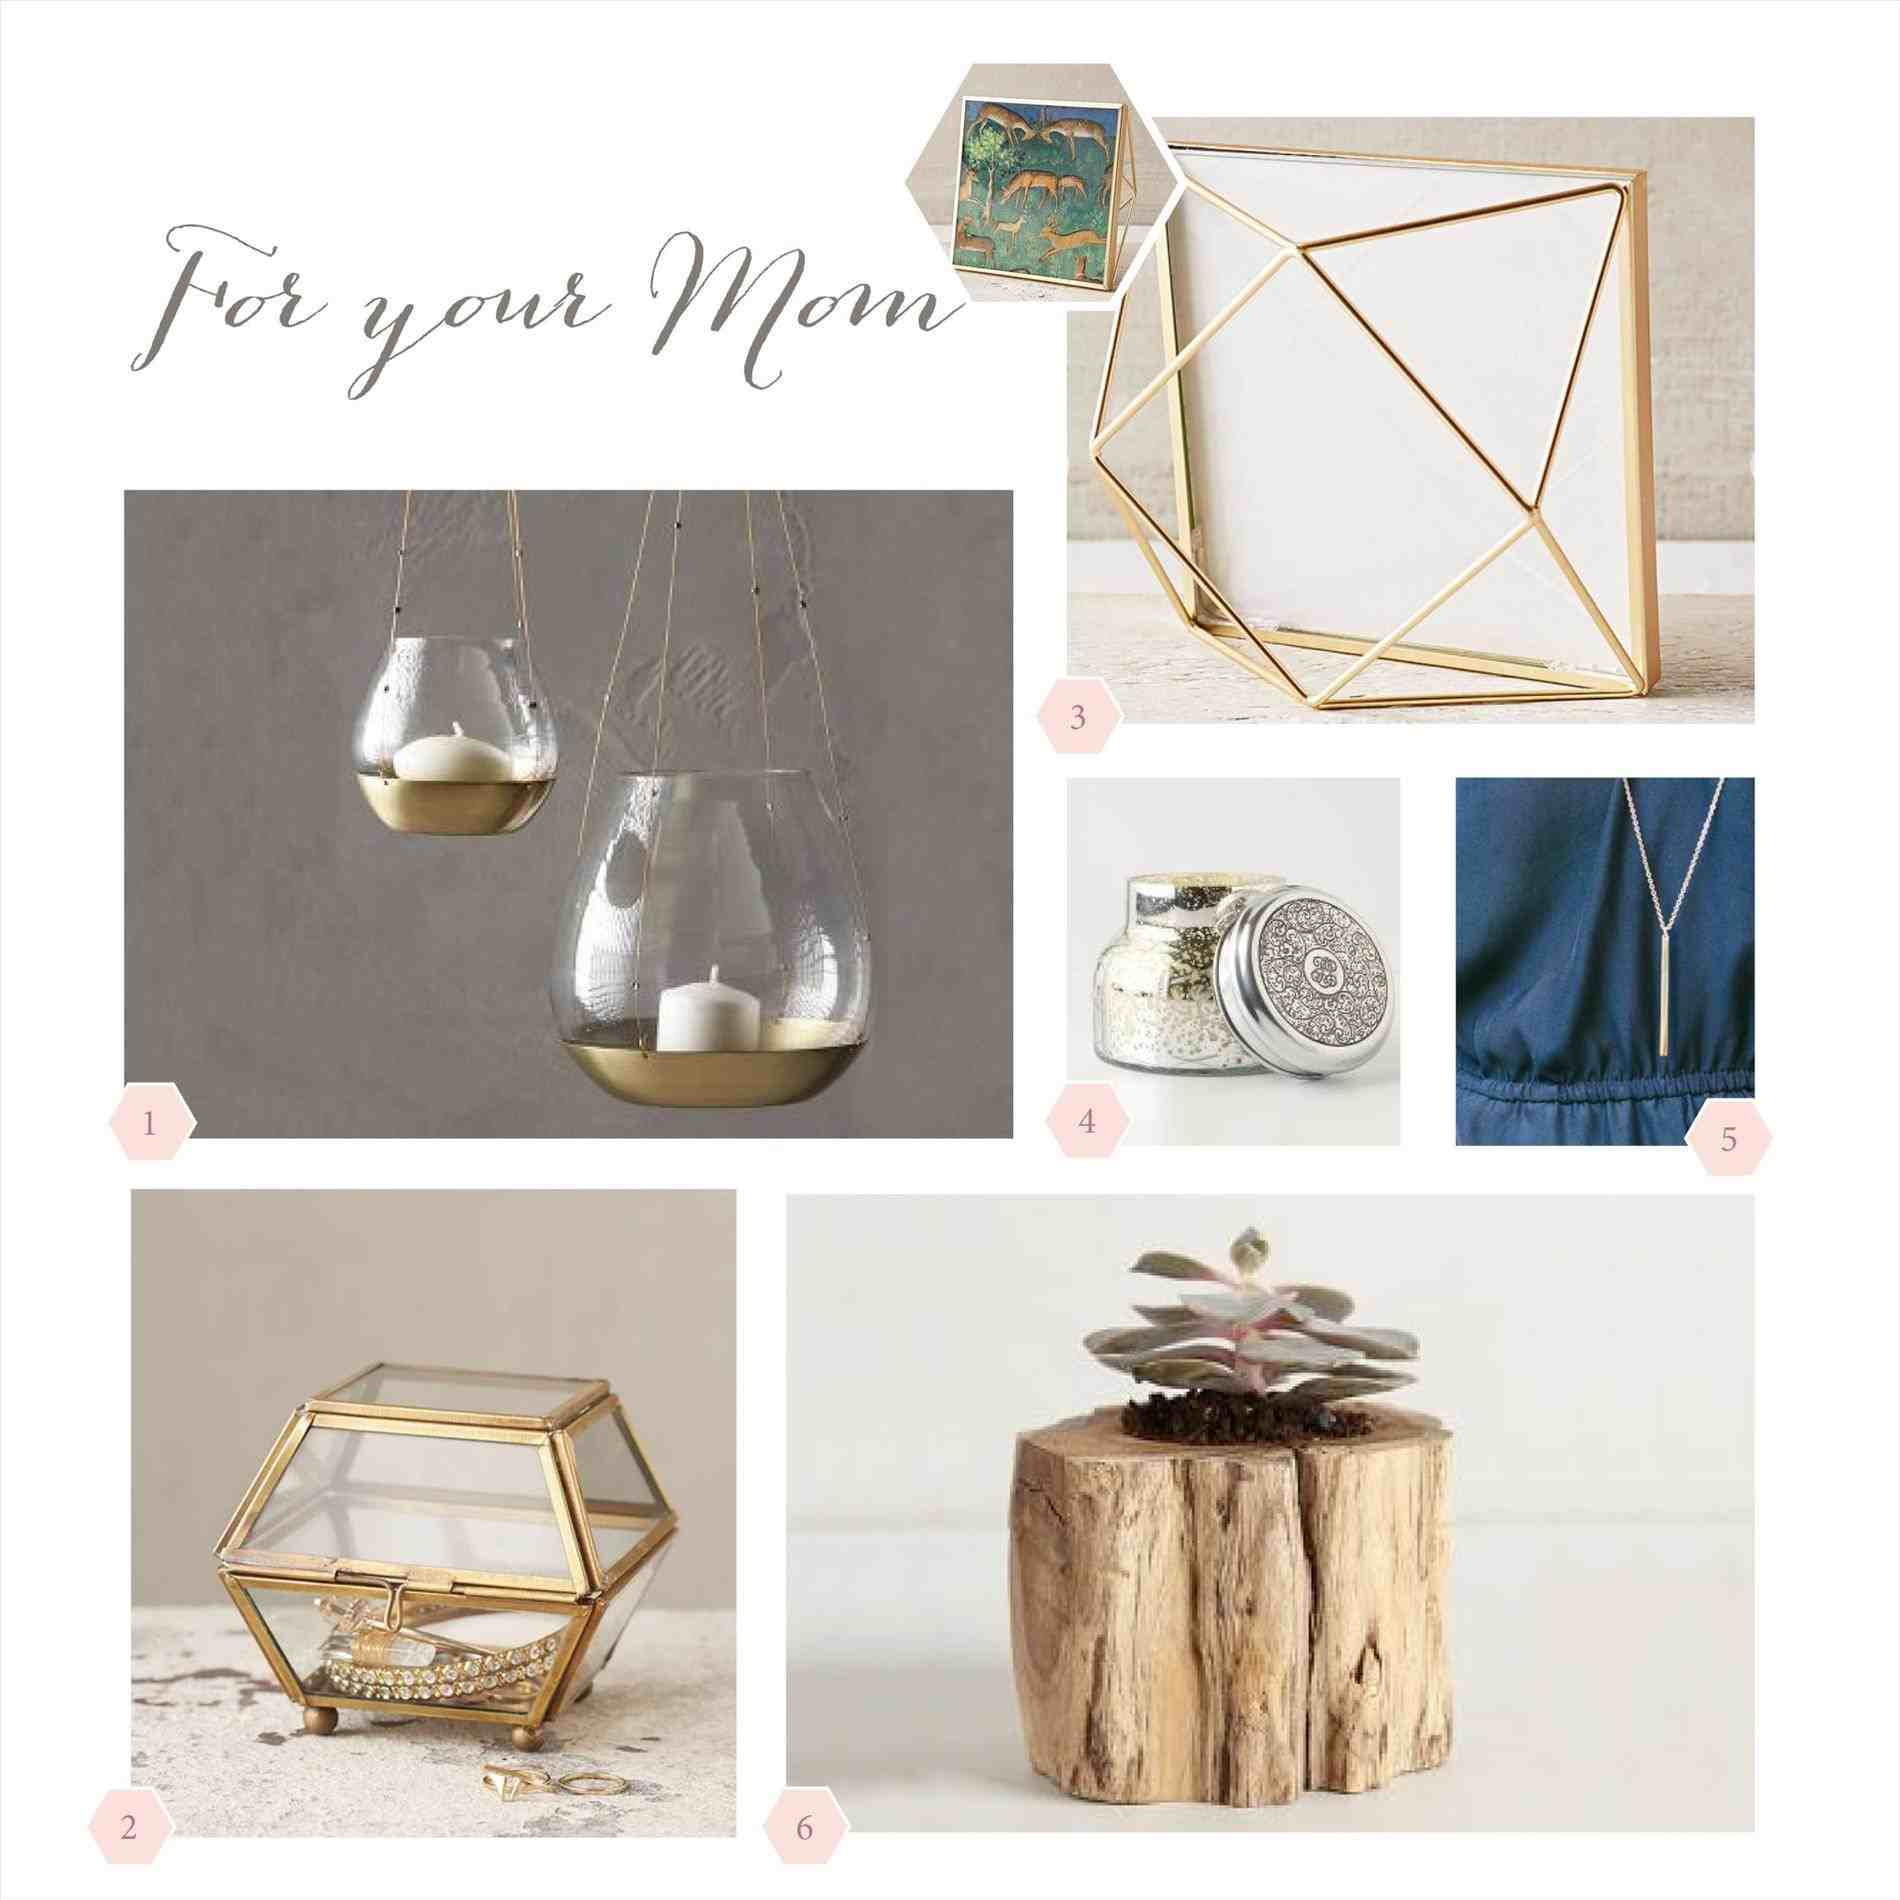 Best ideas about Cheap Gift Ideas For Girlfriend . Save or Pin More About cheap t ideas for girlfriend Update ipmserie Now.